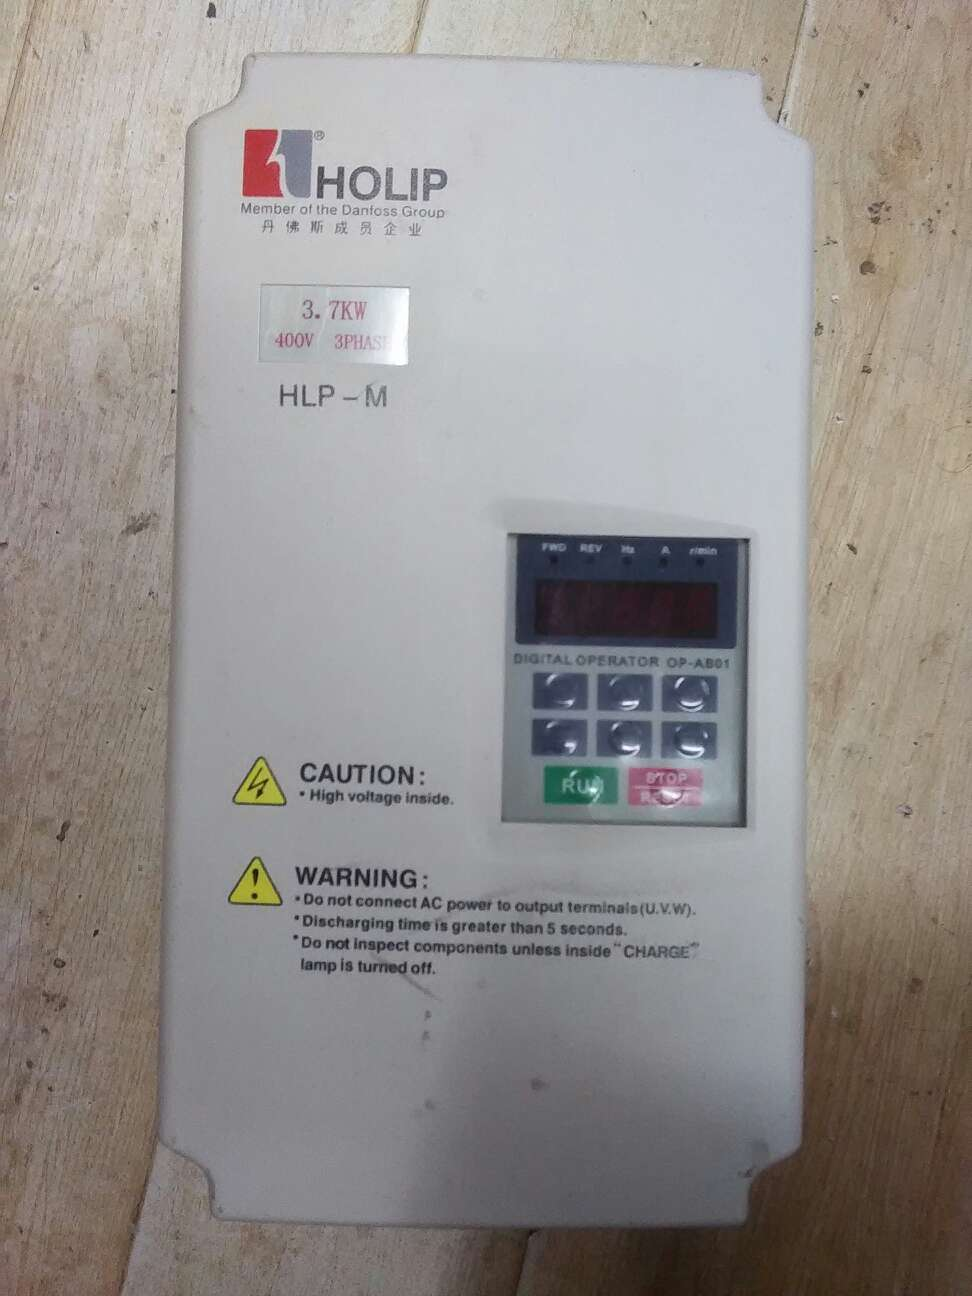 vfd holip hlp m03d743b grinder inverter 3 7kw 4kw three phase motor speed controller 380v igbt in inverters converters from home improvement on  [ 972 x 1296 Pixel ]